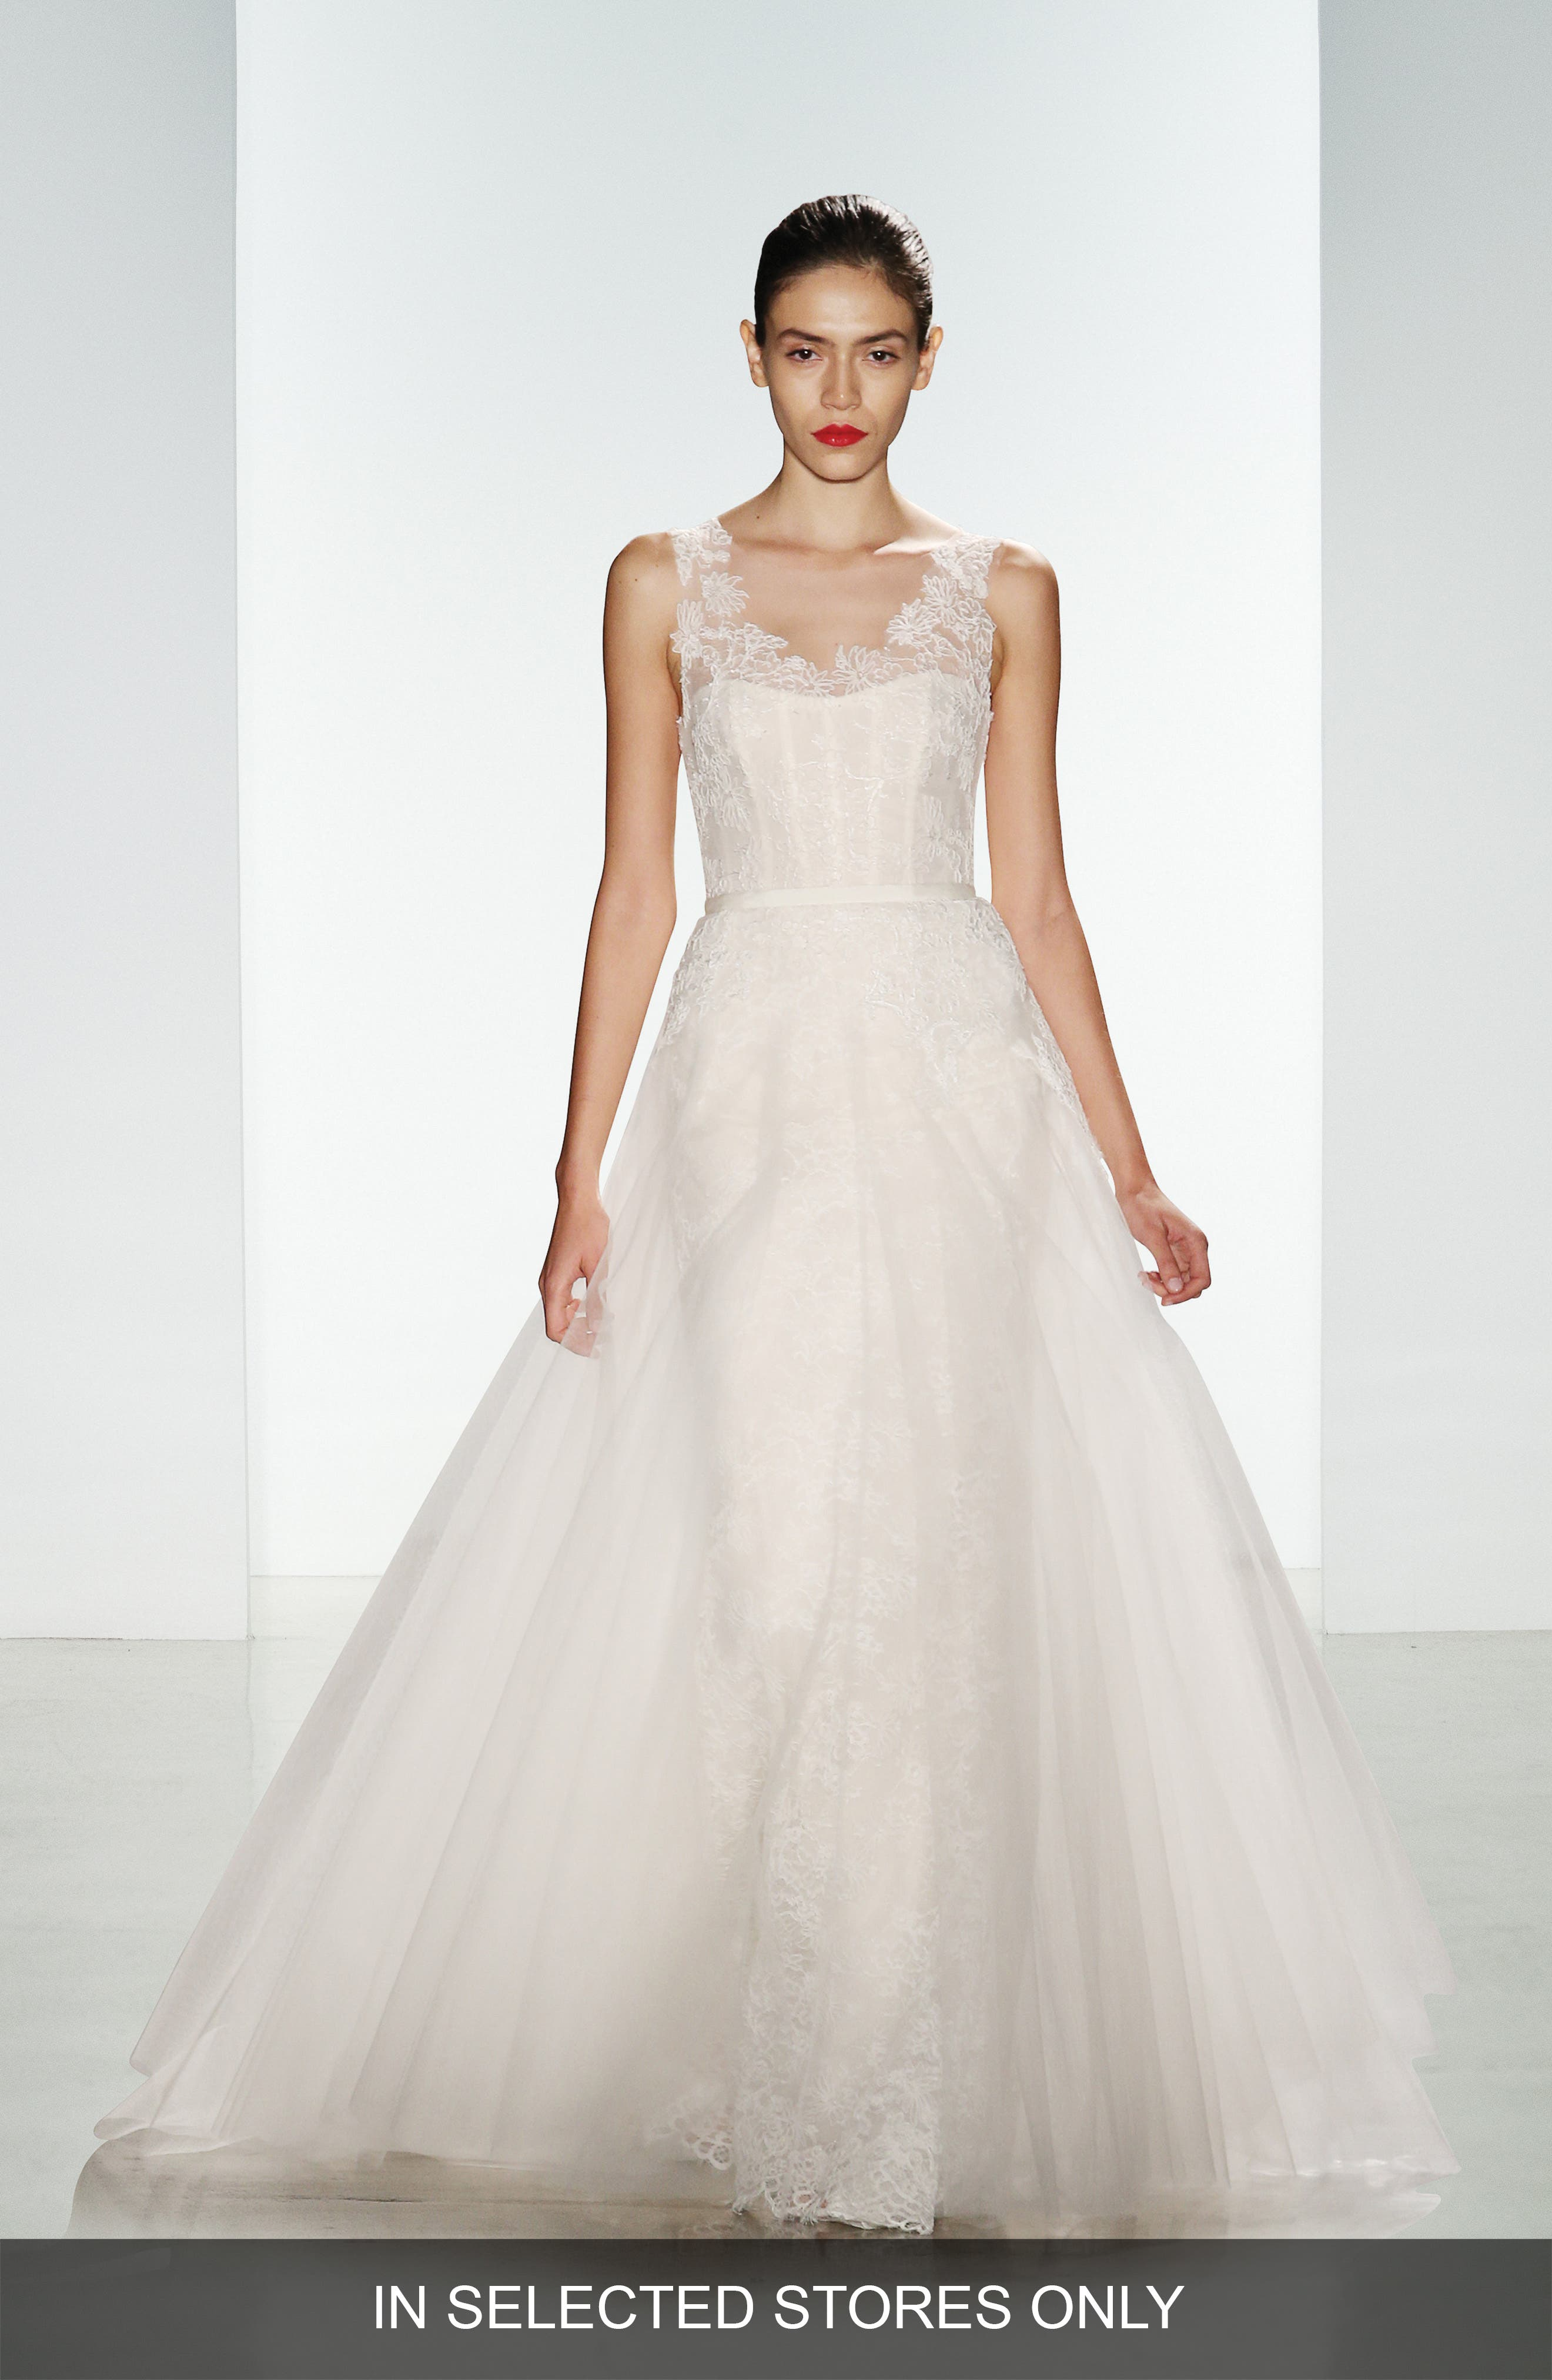 Main Image - Amsale Rae Corded Lace Gown with Tulle Overskirt